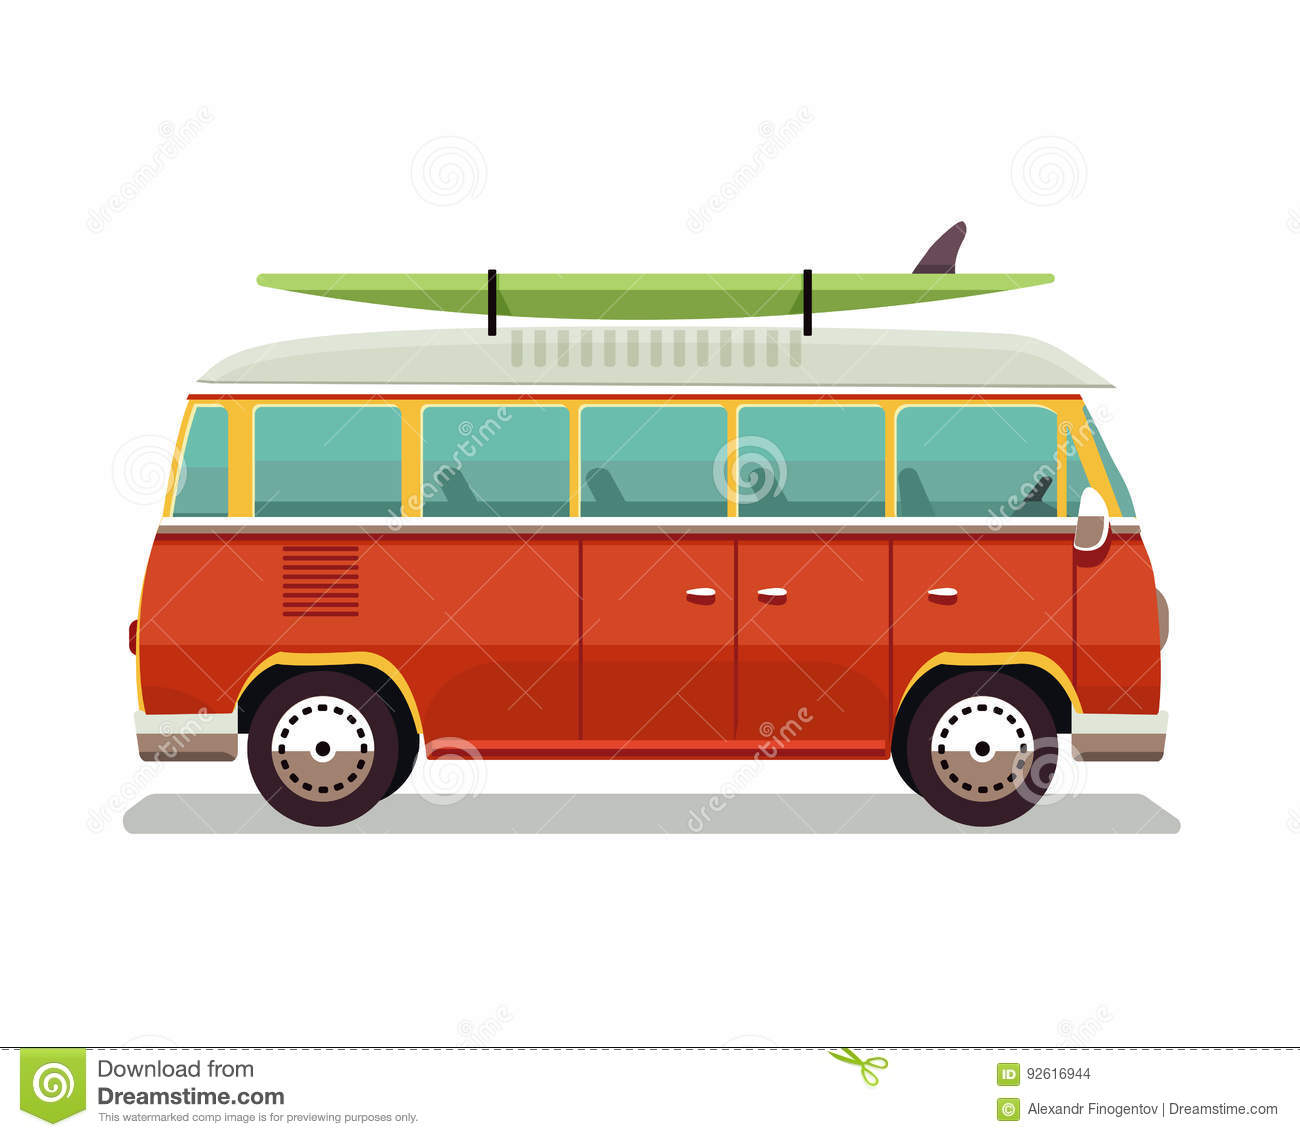 ad3984d722 Surfer van. Vintage travel car. Old classic camper minivan. Retro hippie  bus. Vector illustration in flat design isolated on white background